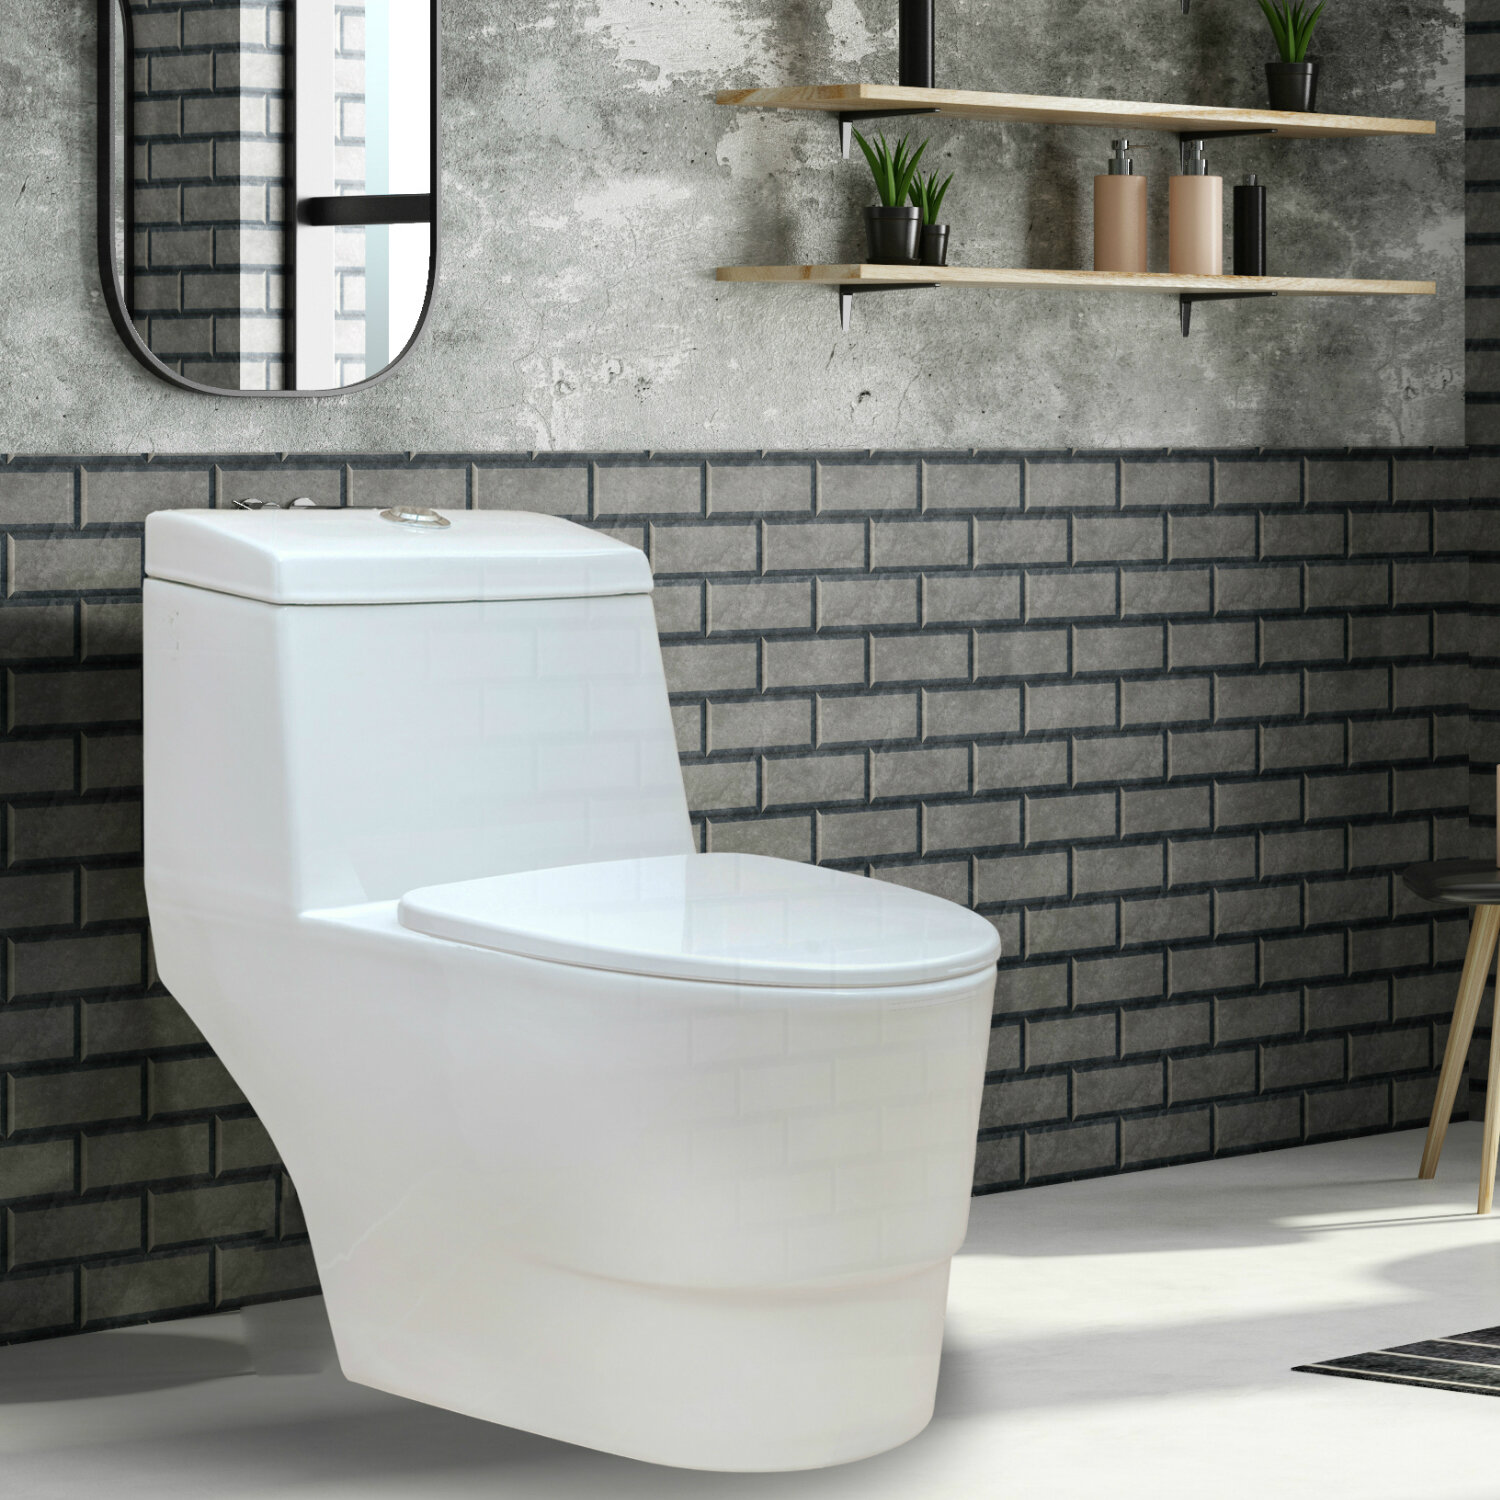 Cool Modern Dual Flush Elongated One Piece Toilet Seat Included Ibusinesslaw Wood Chair Design Ideas Ibusinesslaworg